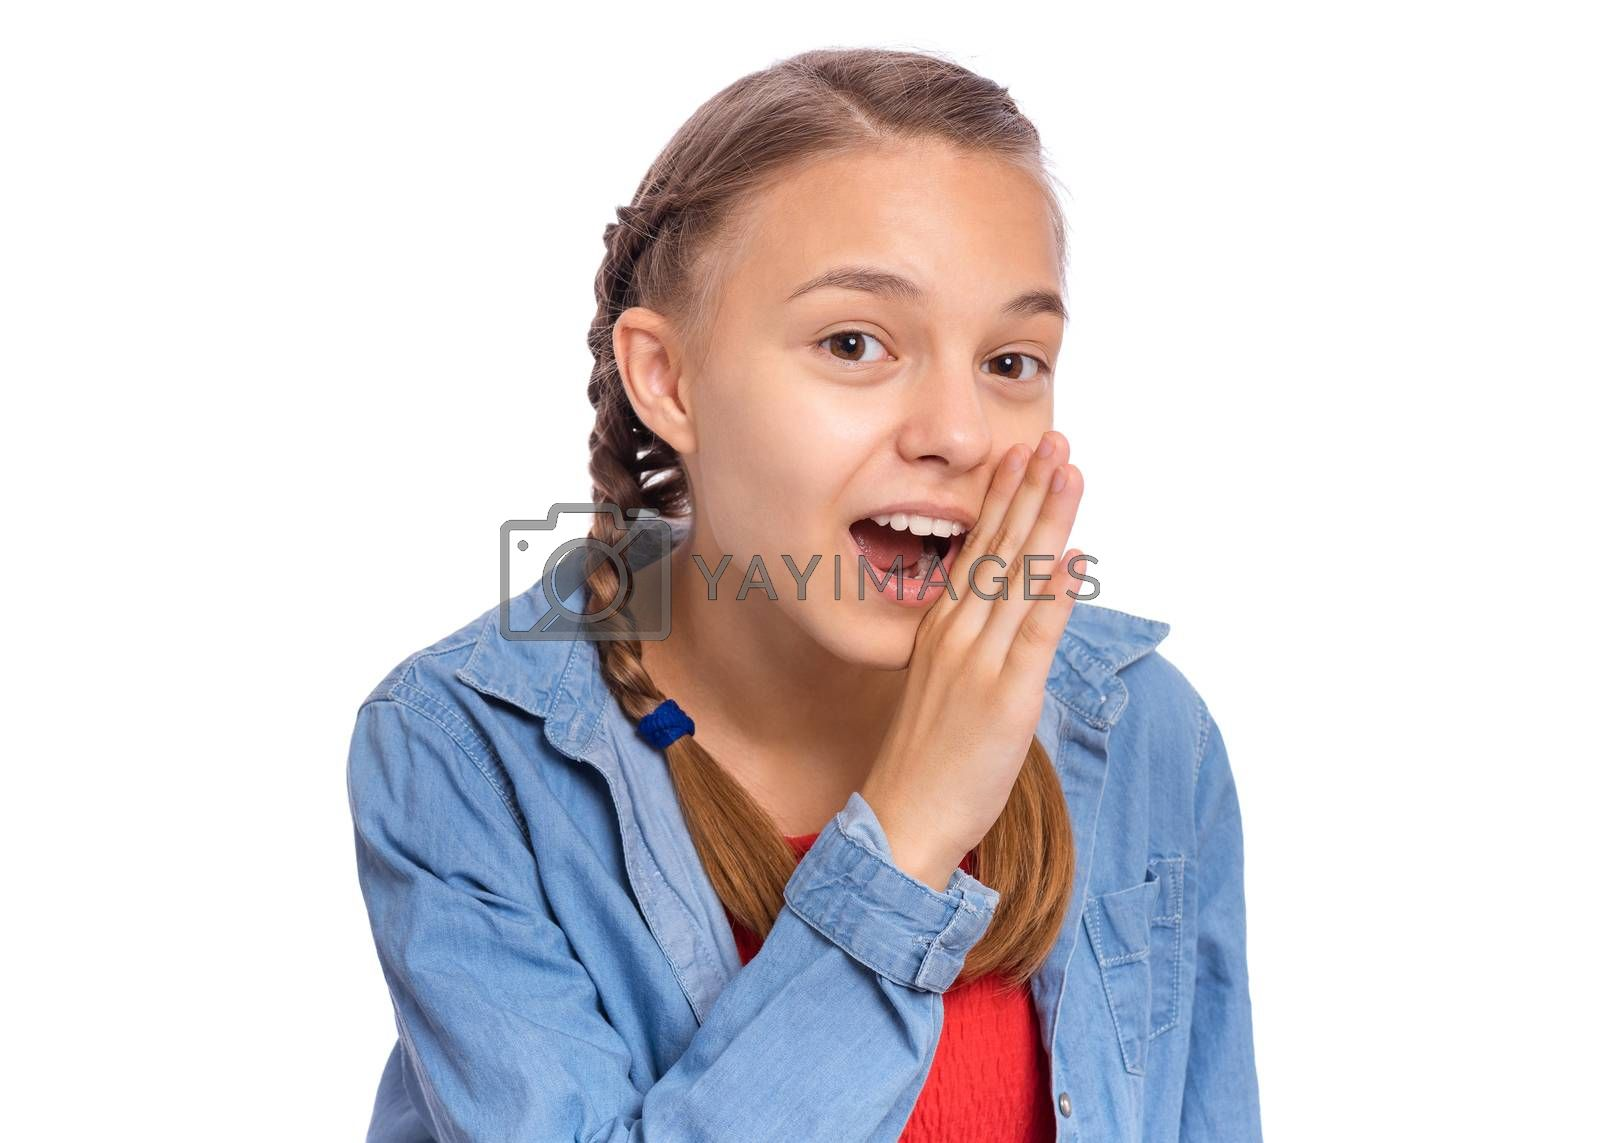 Happy teenage girl whispers, says something, covering her mouth with a palm, isolated on white background